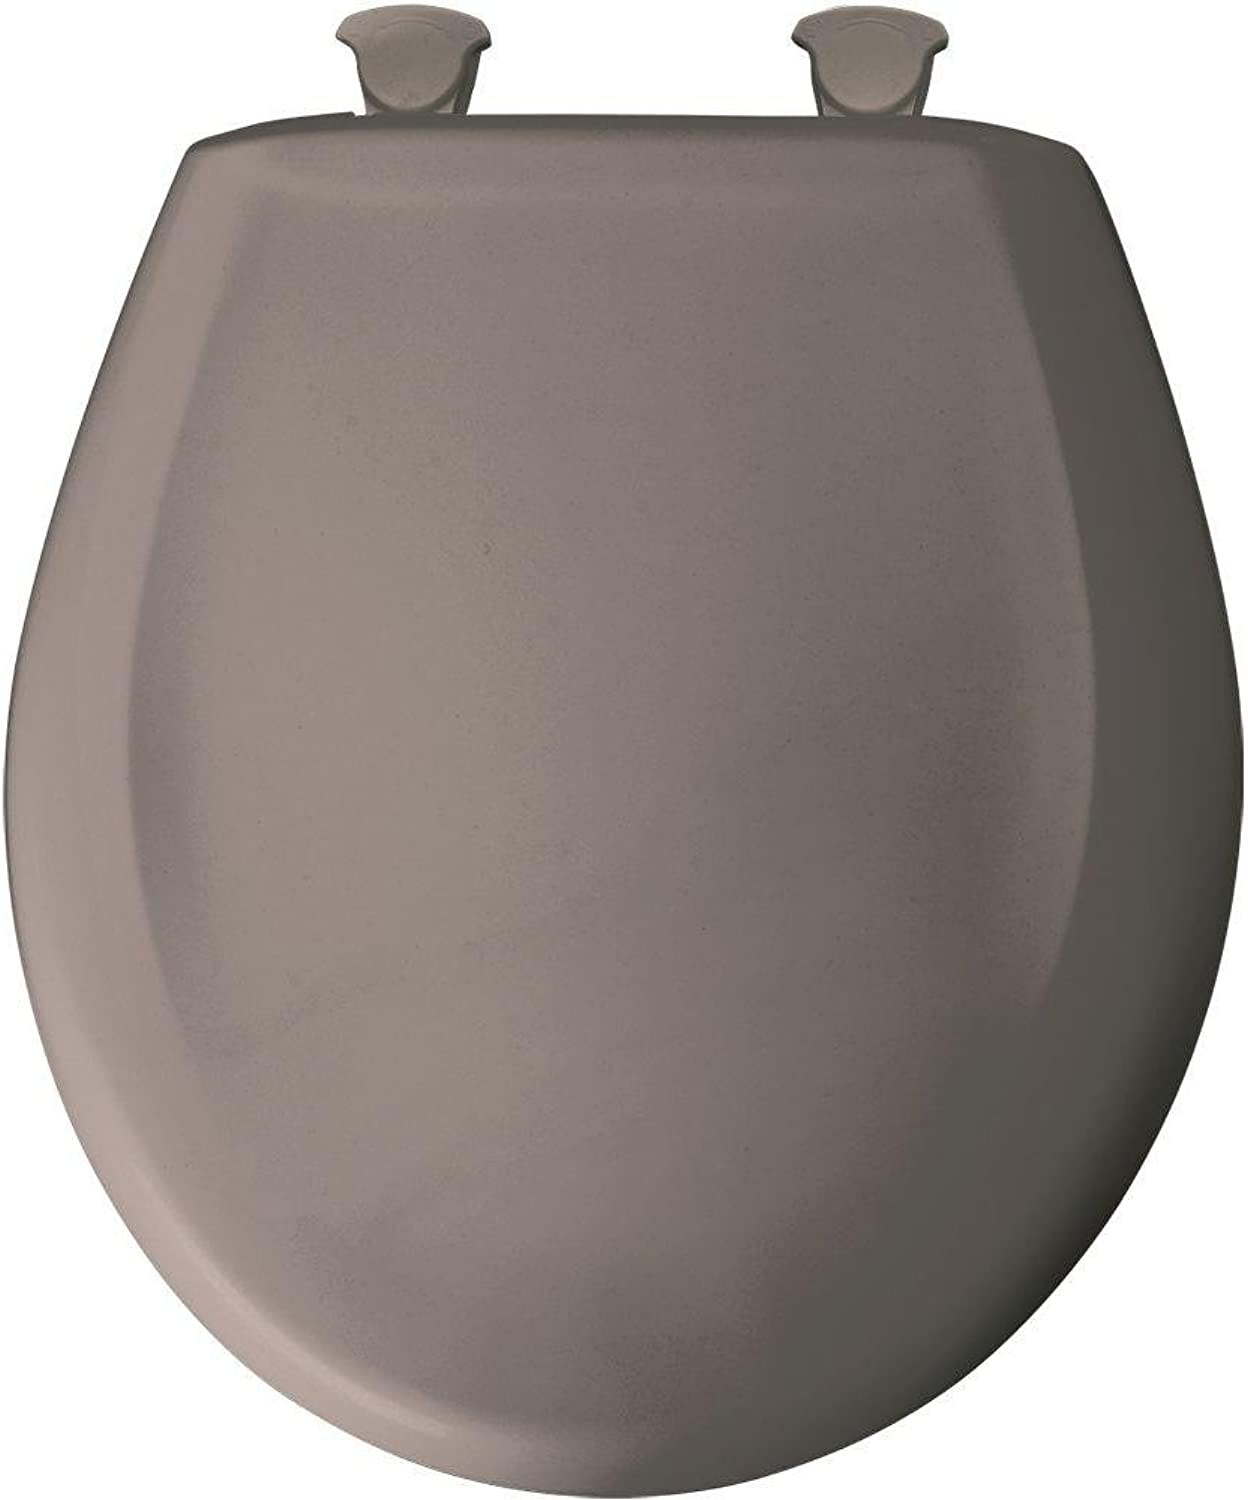 Church Seat 200SLOWT 468 Round Closed Front Toilet Seat in Classic Mink